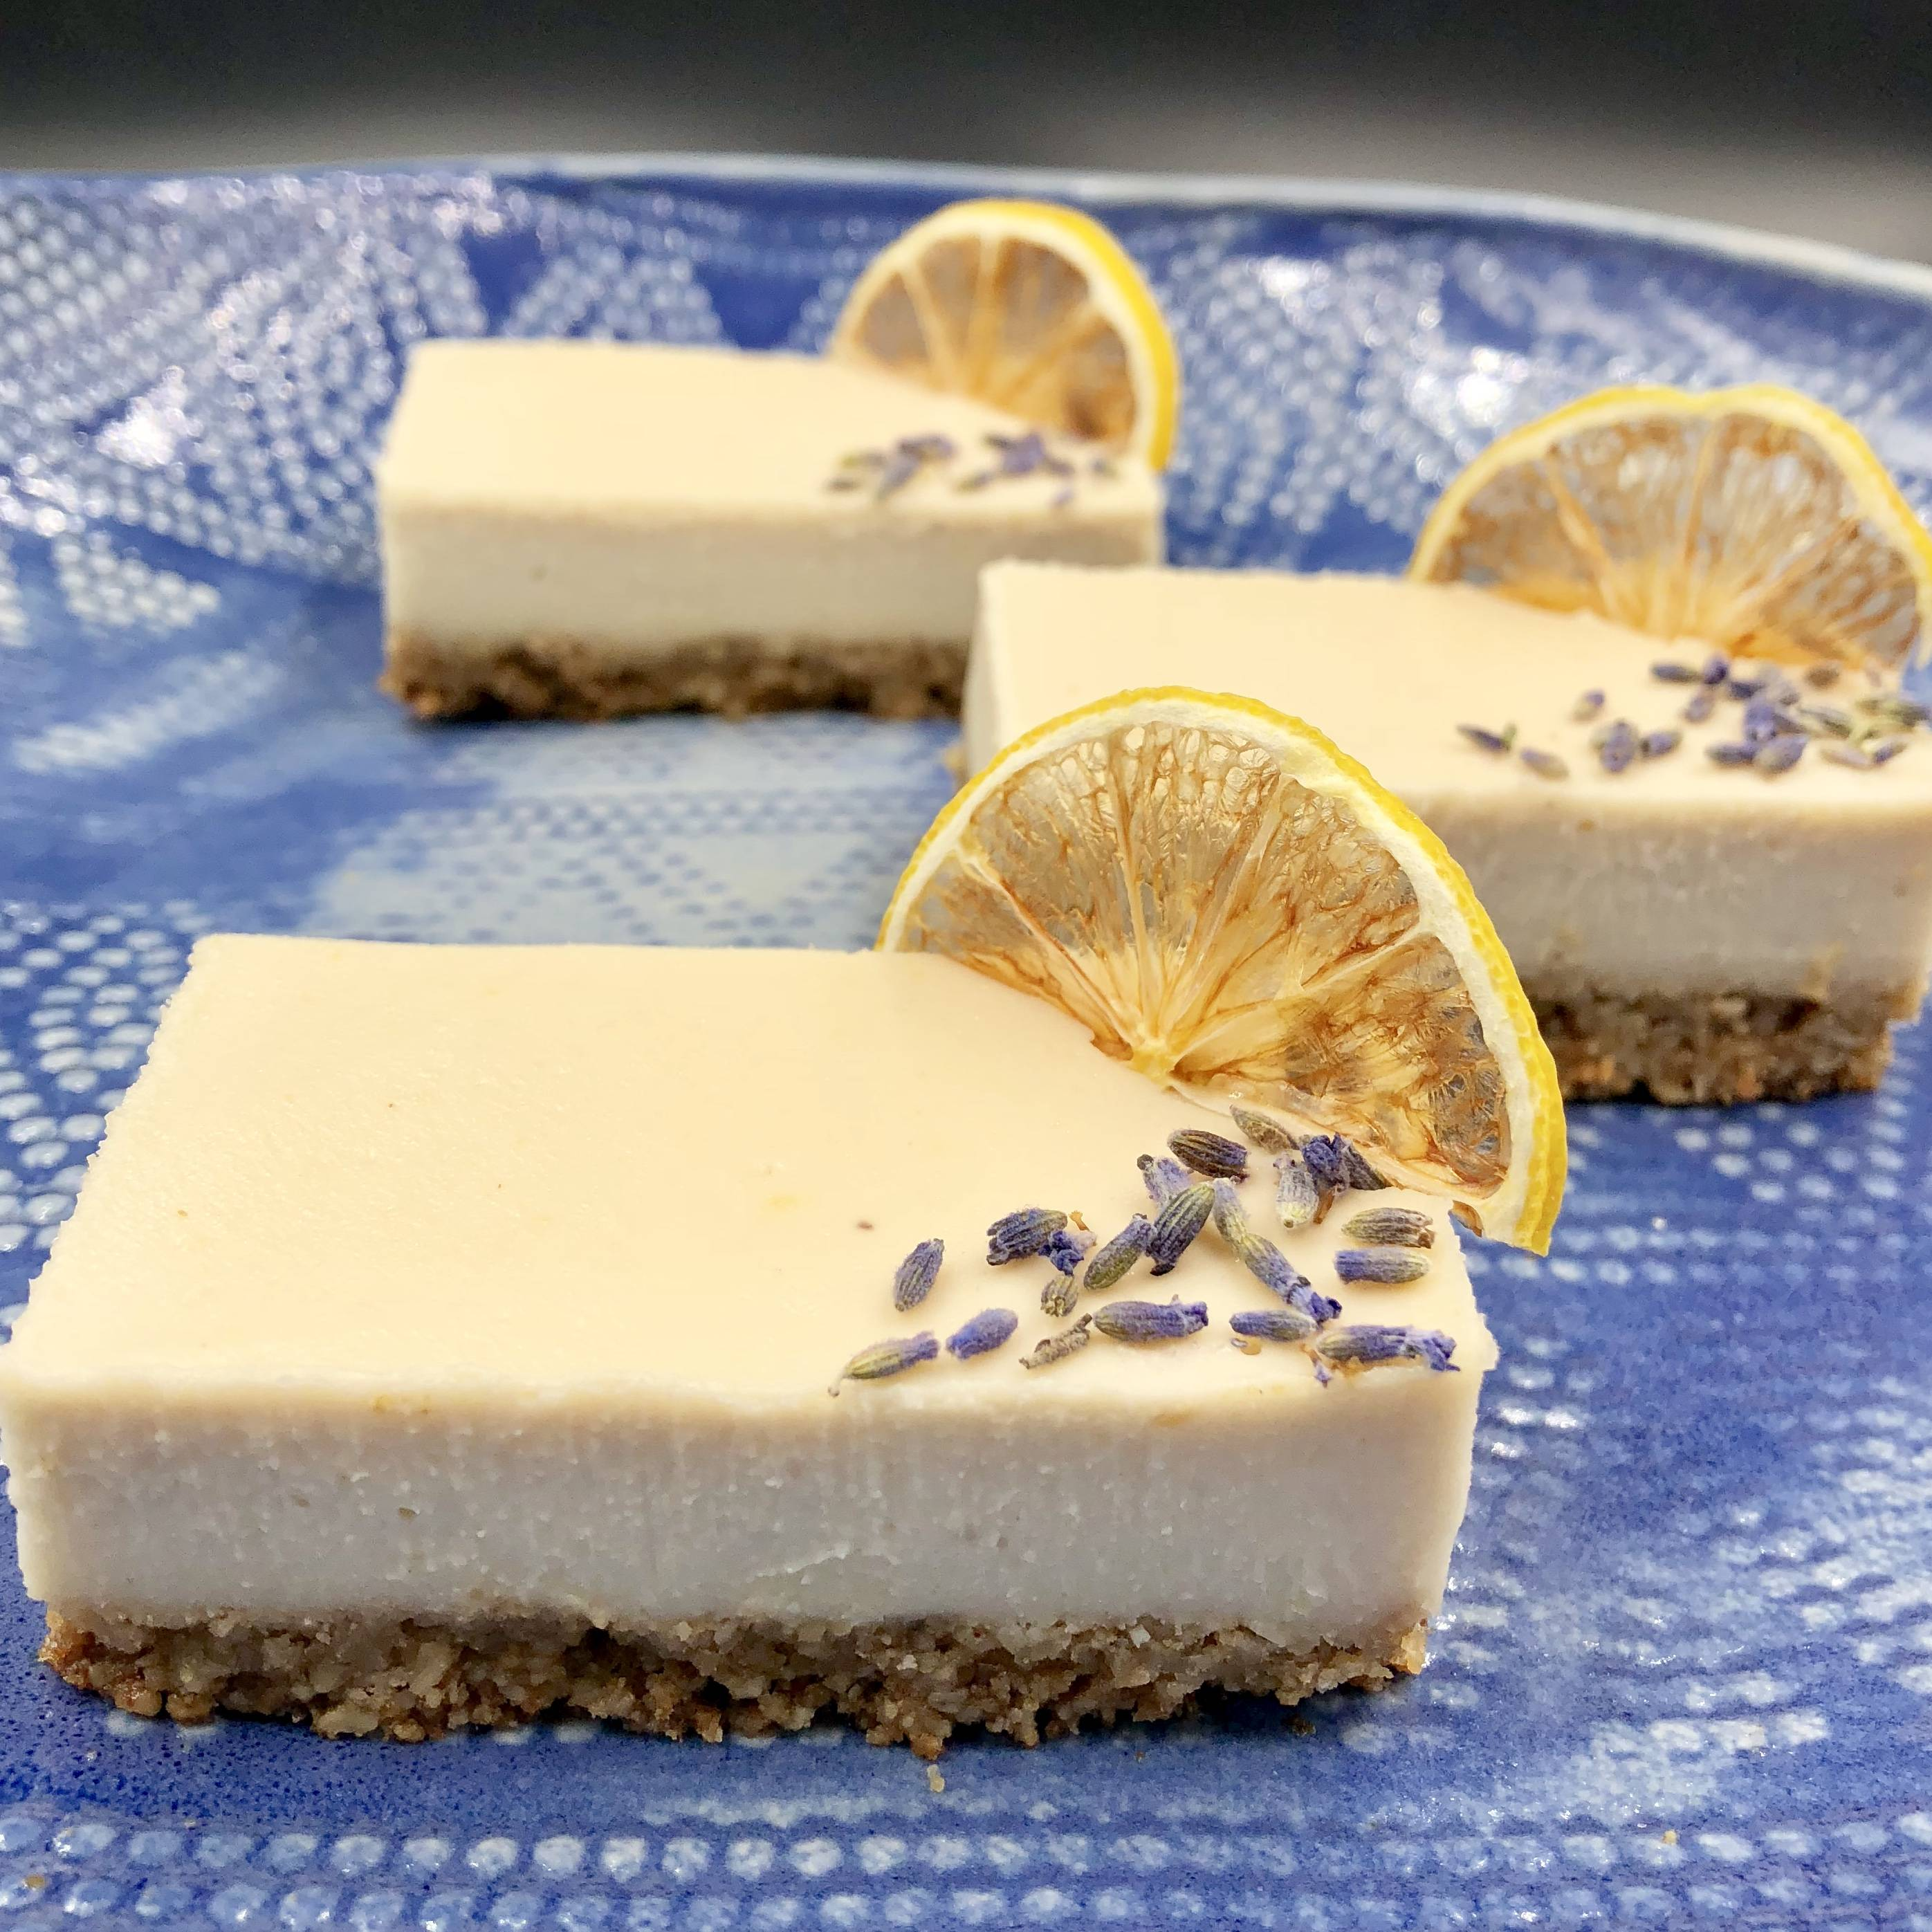 Bobbi's Baked Nutritional CBD Chef - Lemon Lavender CBD Bars Recipe